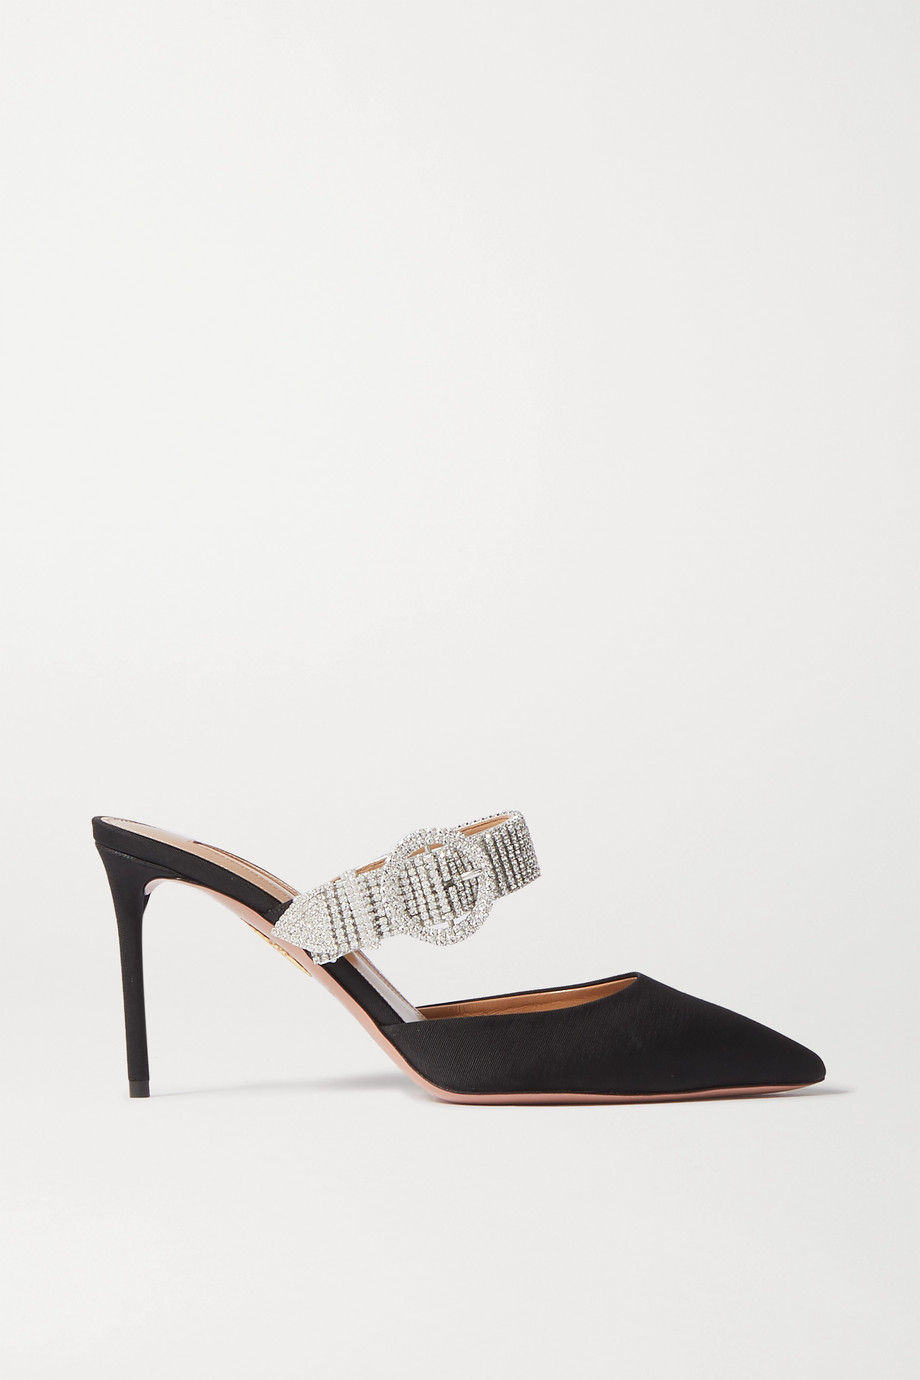 Aquazzura Chain Reaction crystal-embellished grosgrain mules